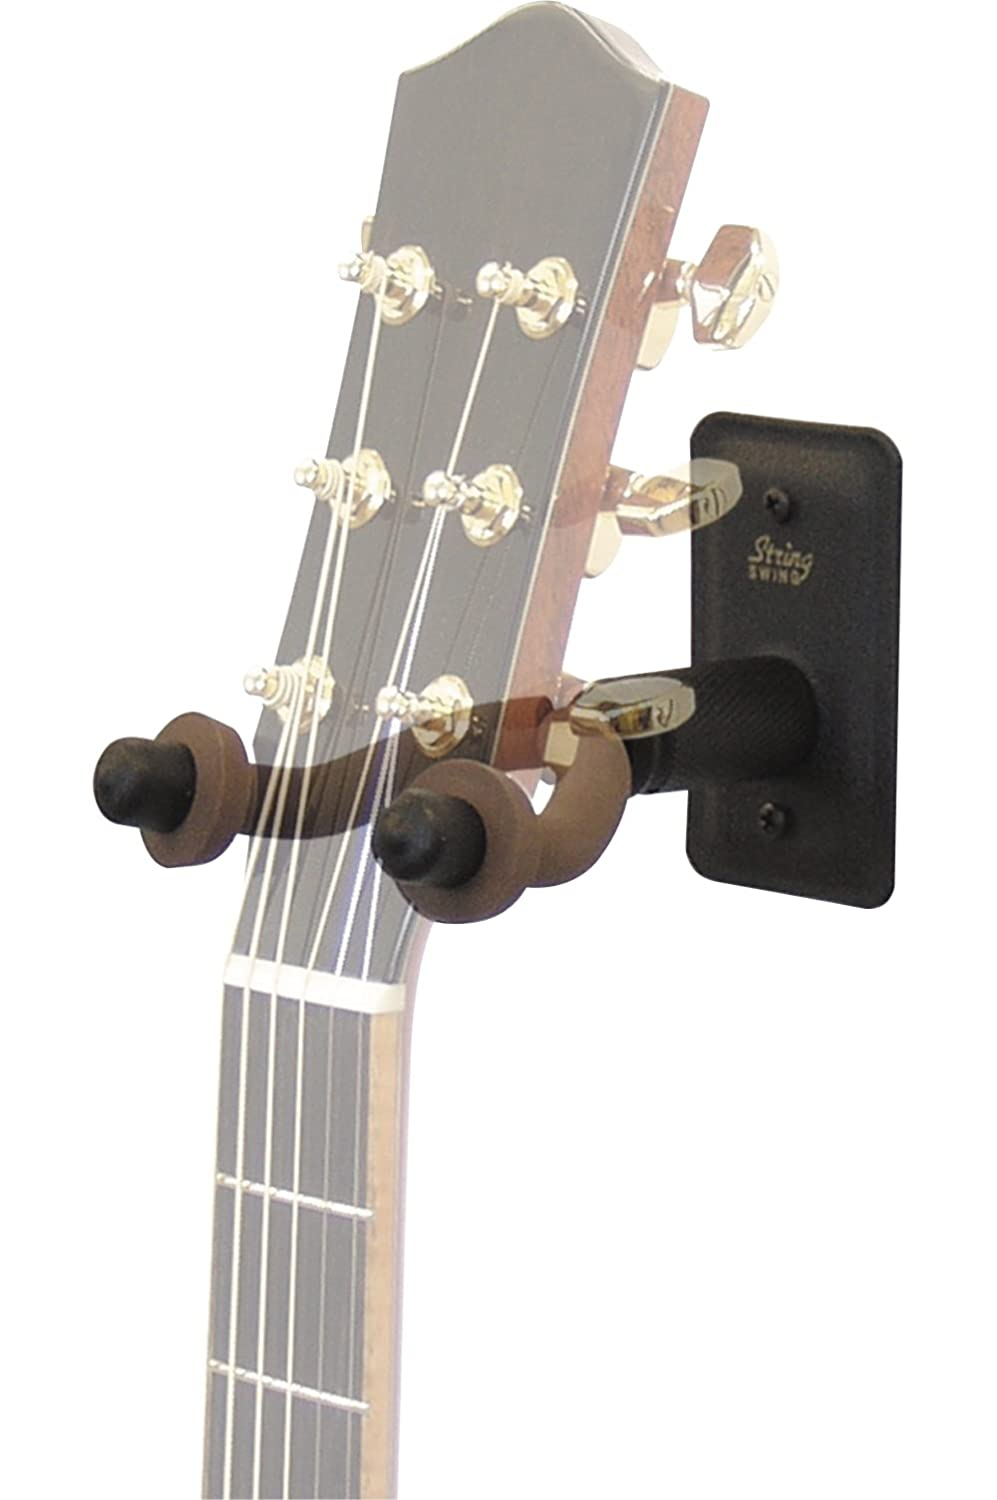 String Swing Metal Home and Studio Wide Guitar Hanger, Black BCC11W